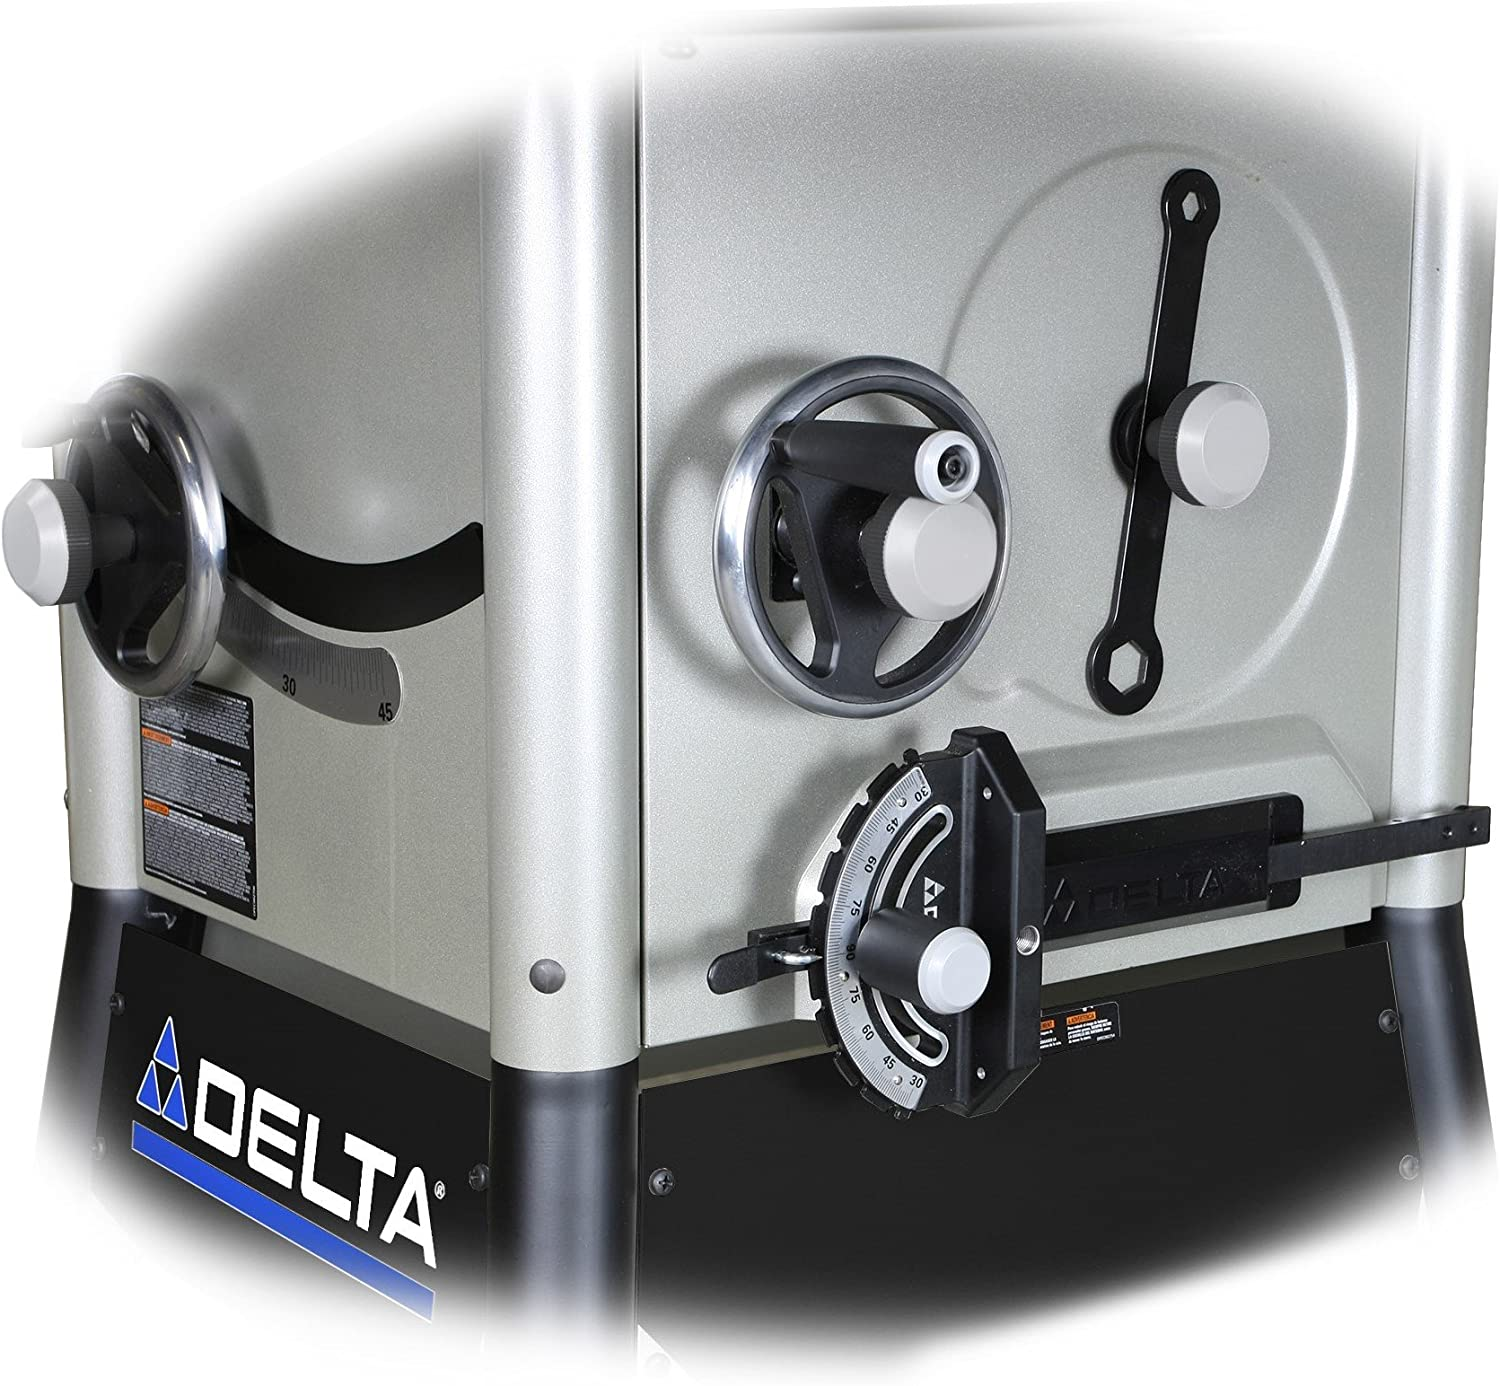 Delta 36-5152 Table Saws product image 4